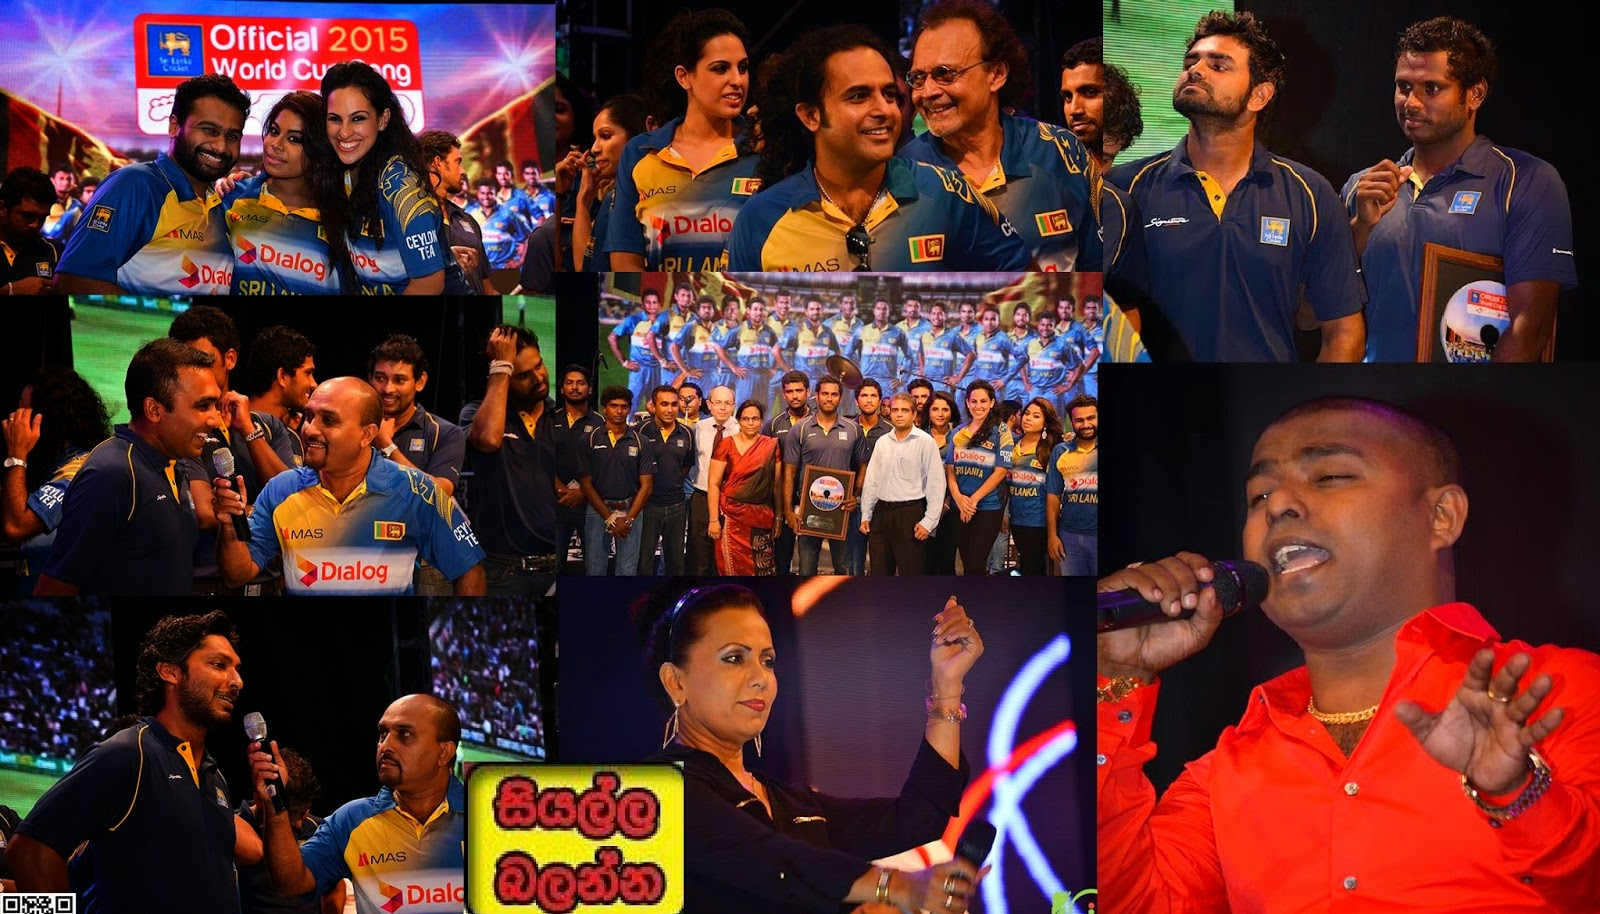 http://picture.gossiplankahotnews.com/2014/12/official-2015-world-cup-sl-song-launch.html